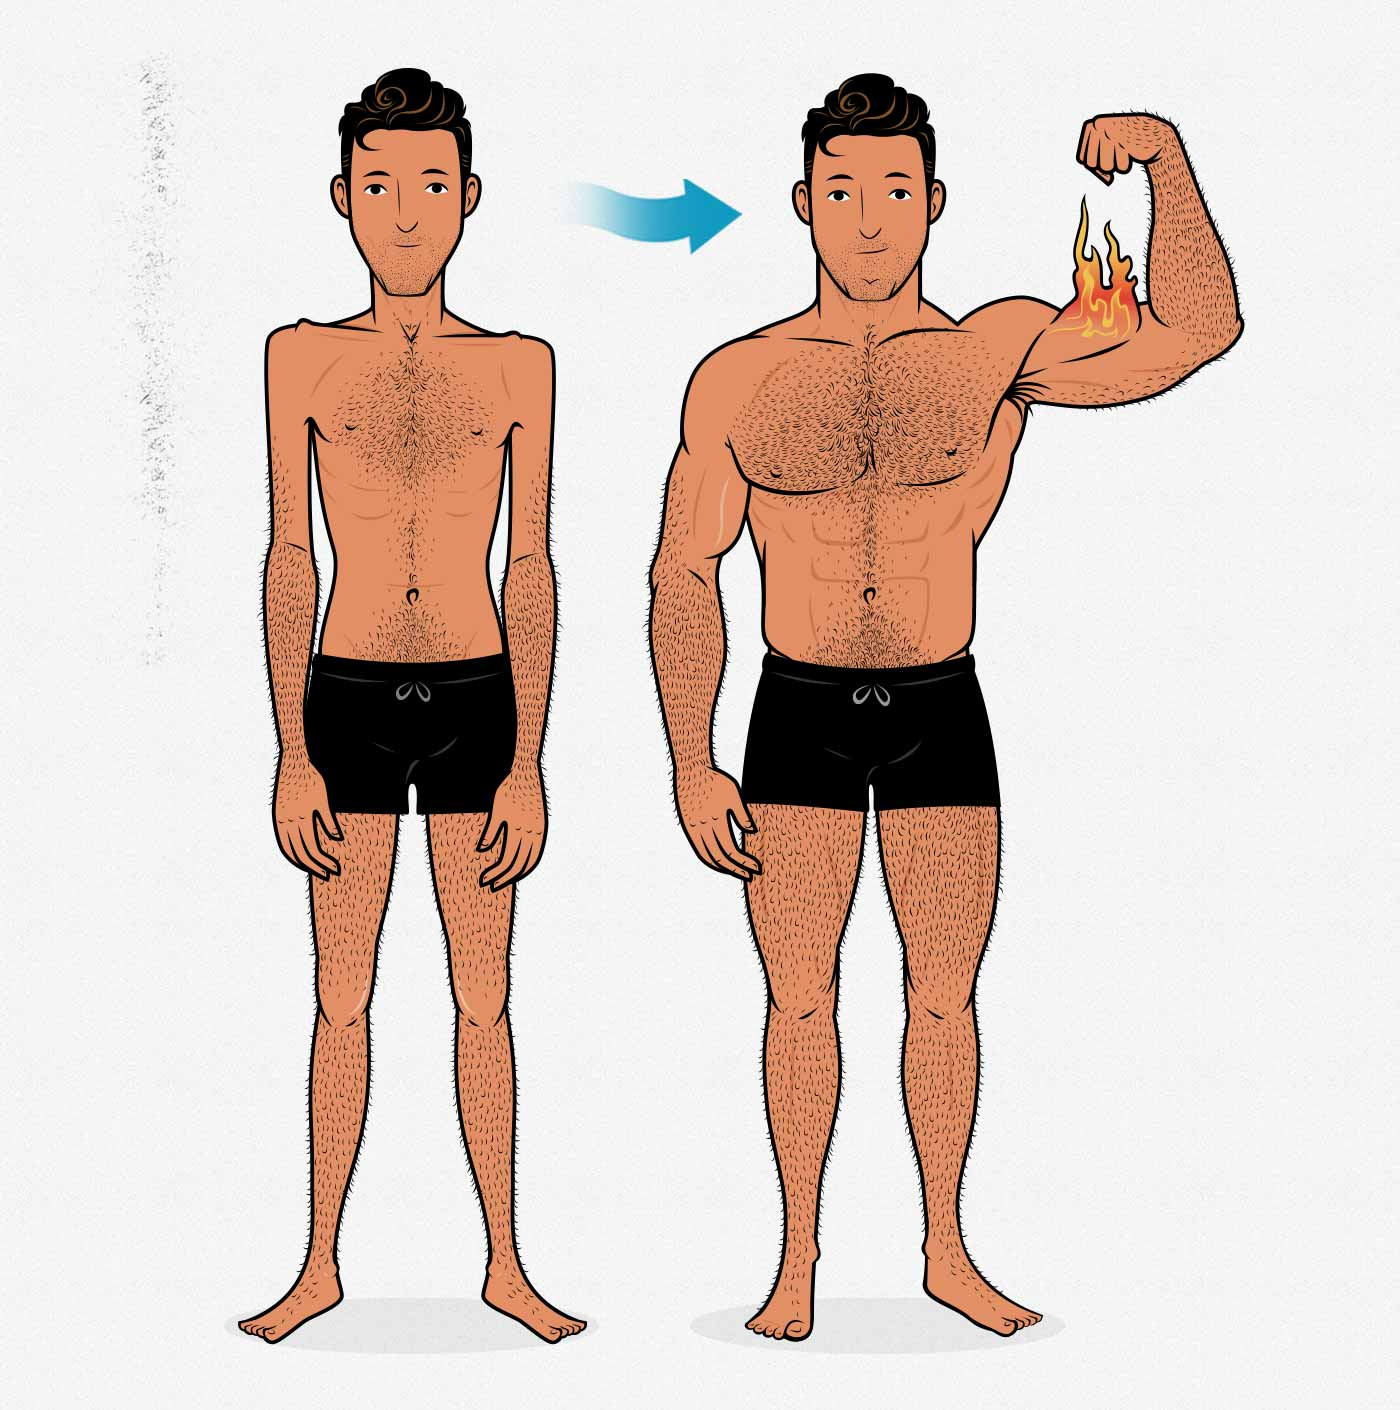 Before and after illustration of a skinny guy building muscle and becoming muscular.